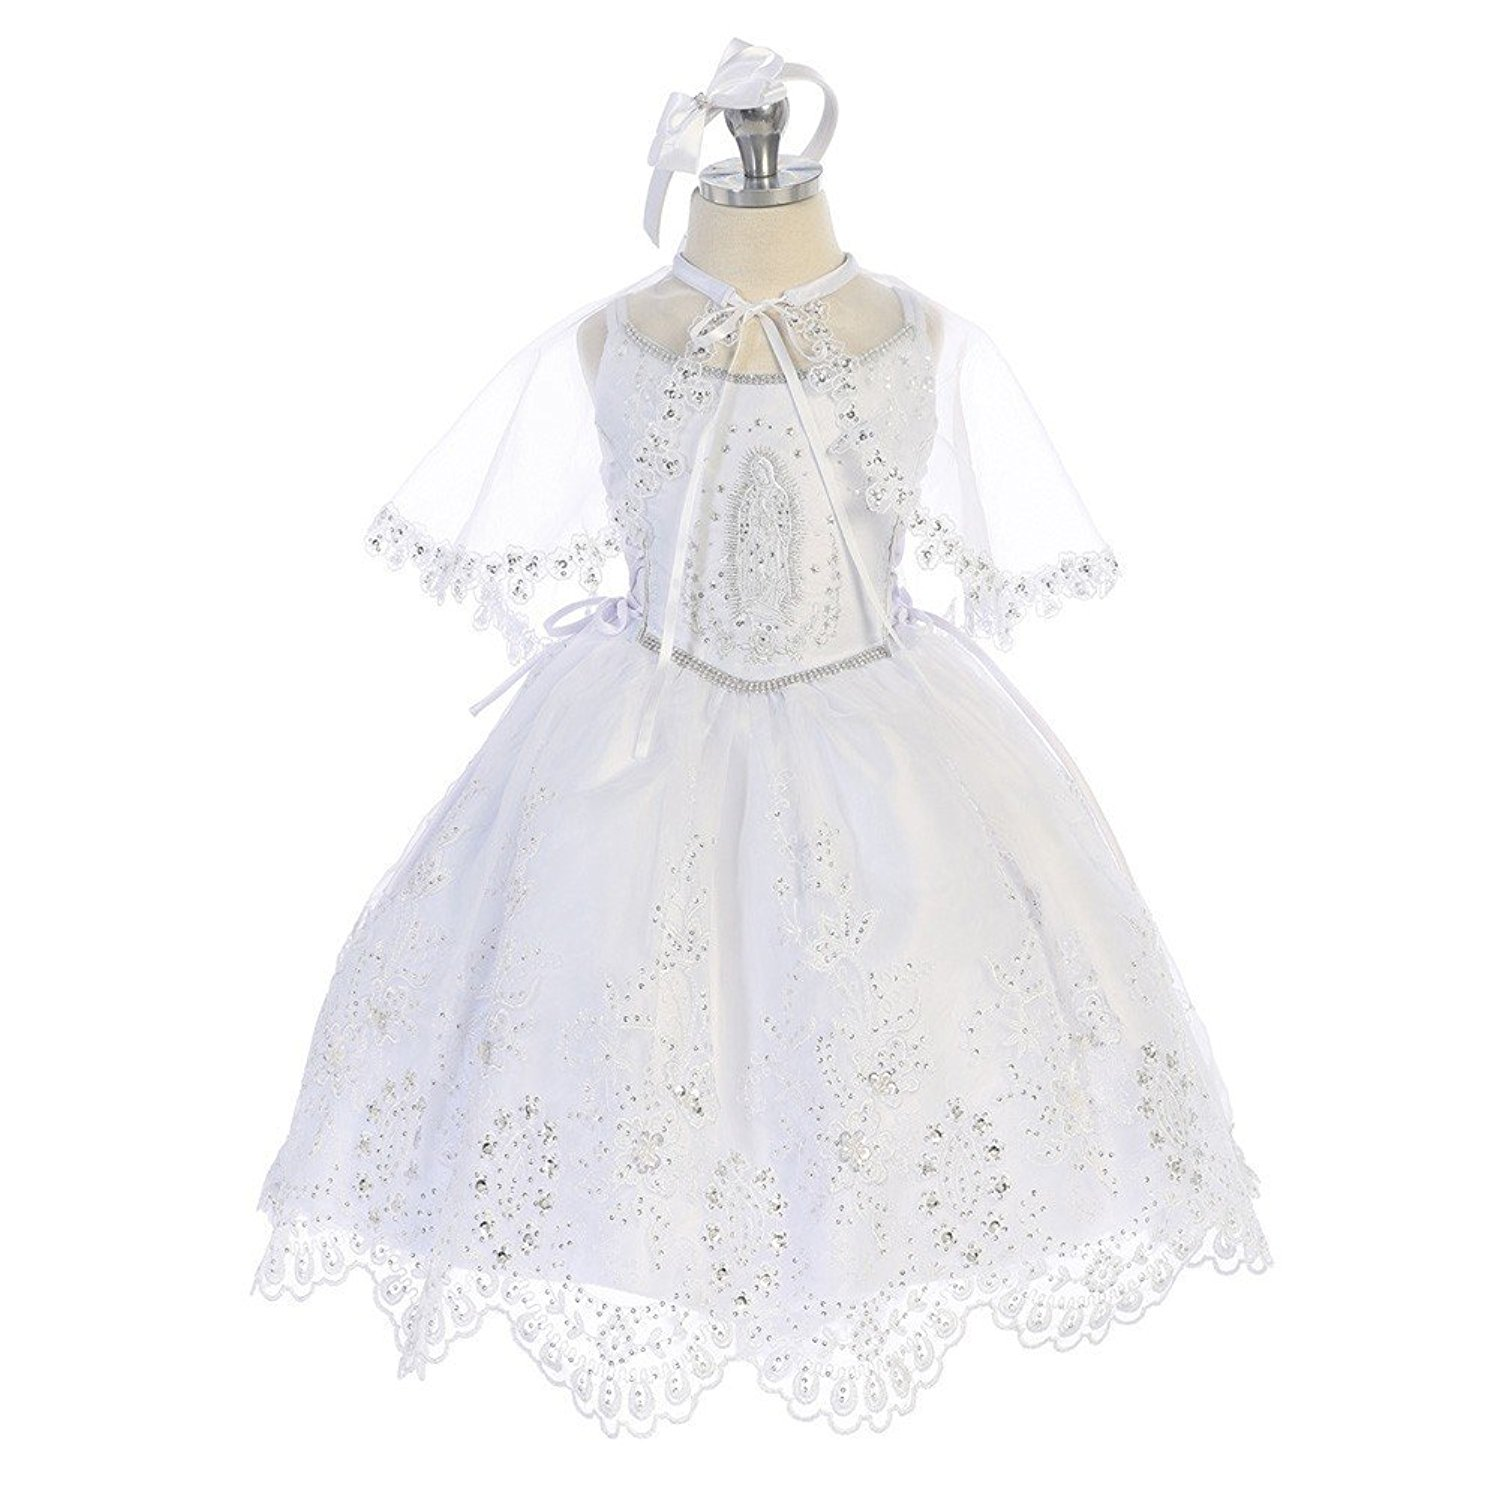 Get Quotations Angels Garment Baby S White Embroidered Organza Tail Baptism Dress 6 24m